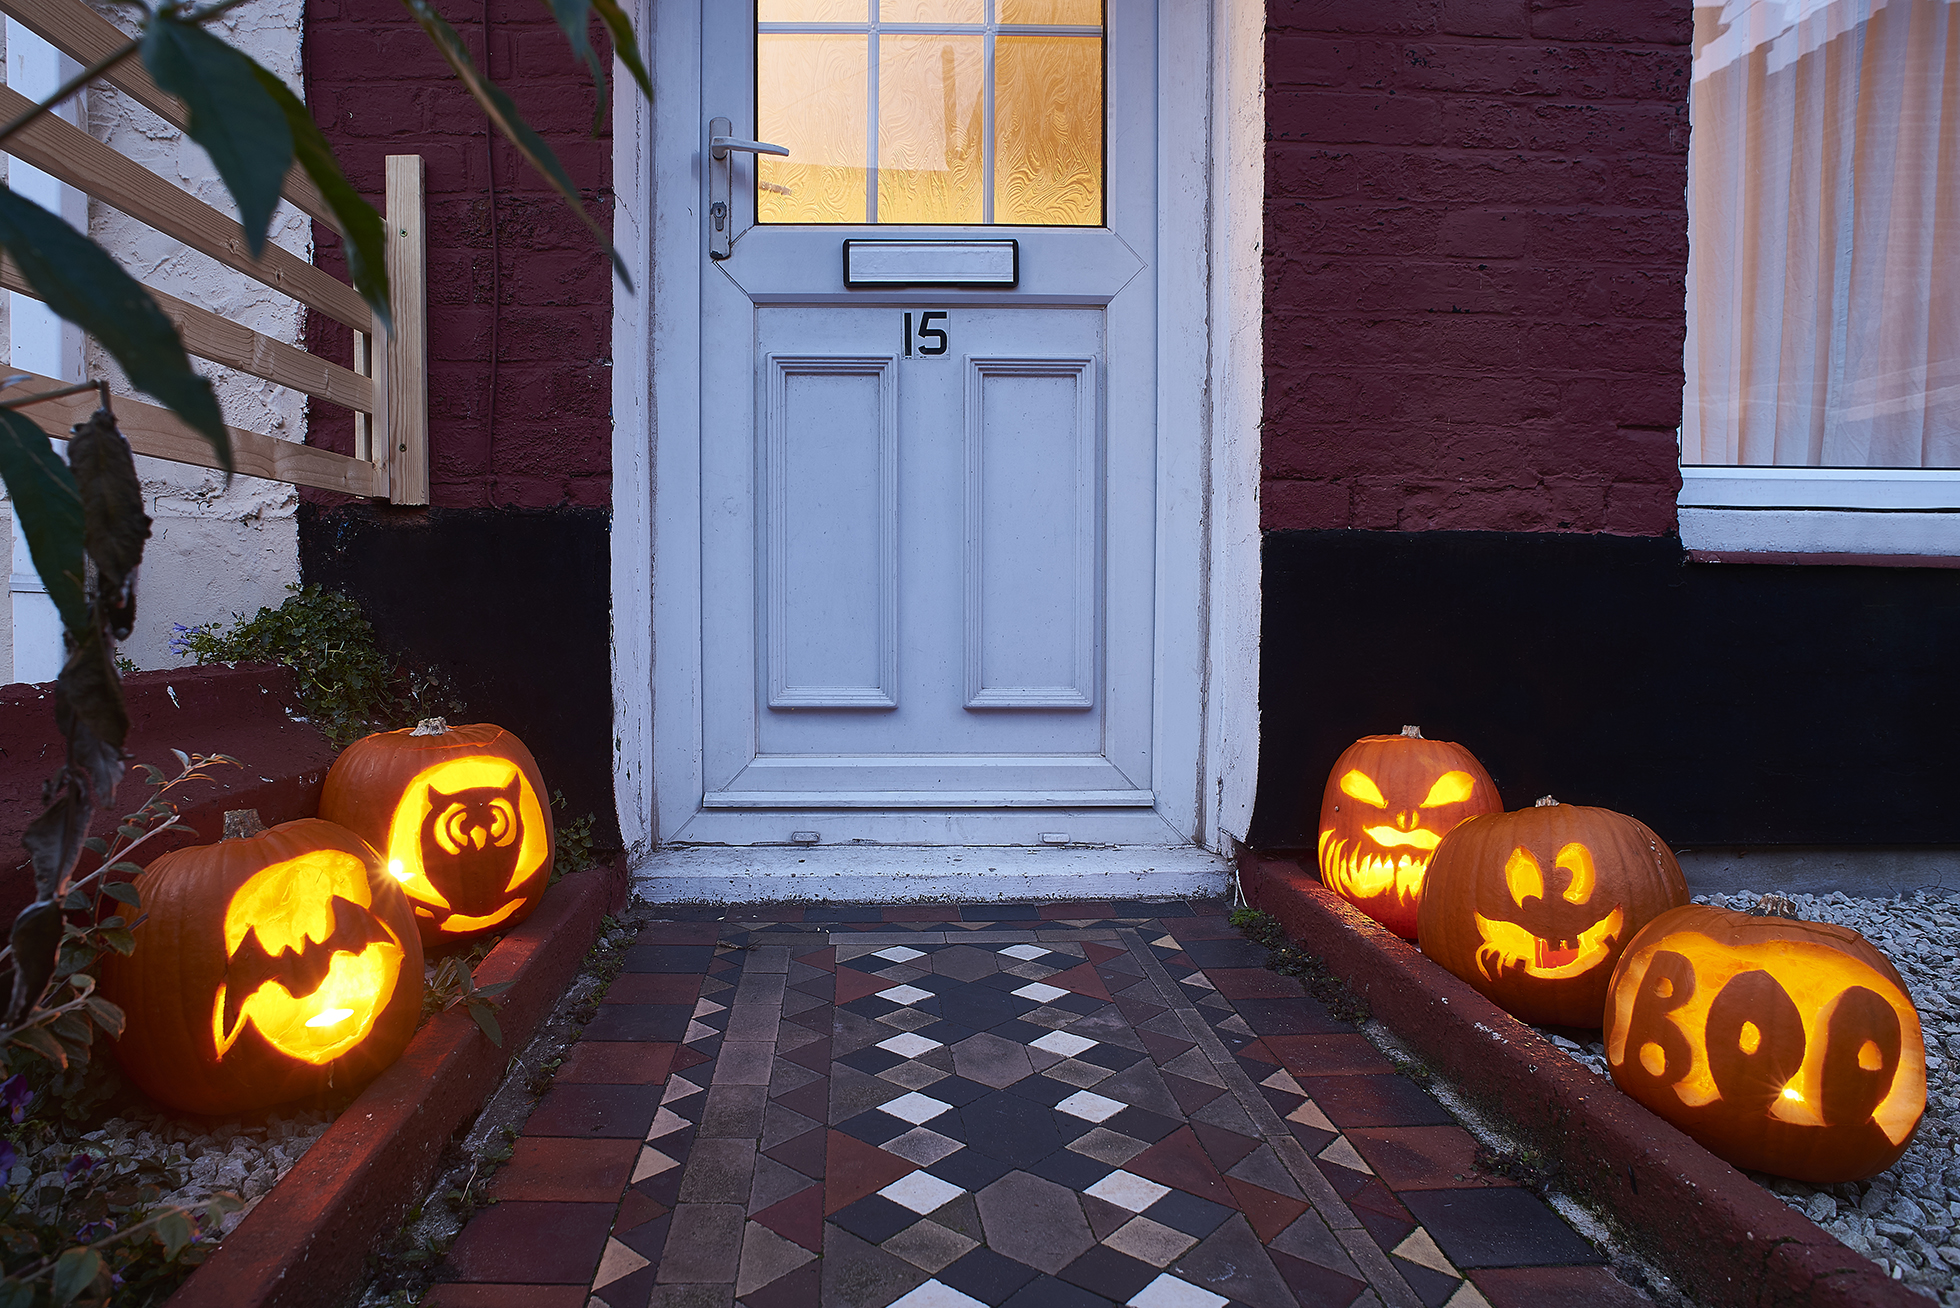 Brick path lined with jack-o-lanterns lit with LED candles